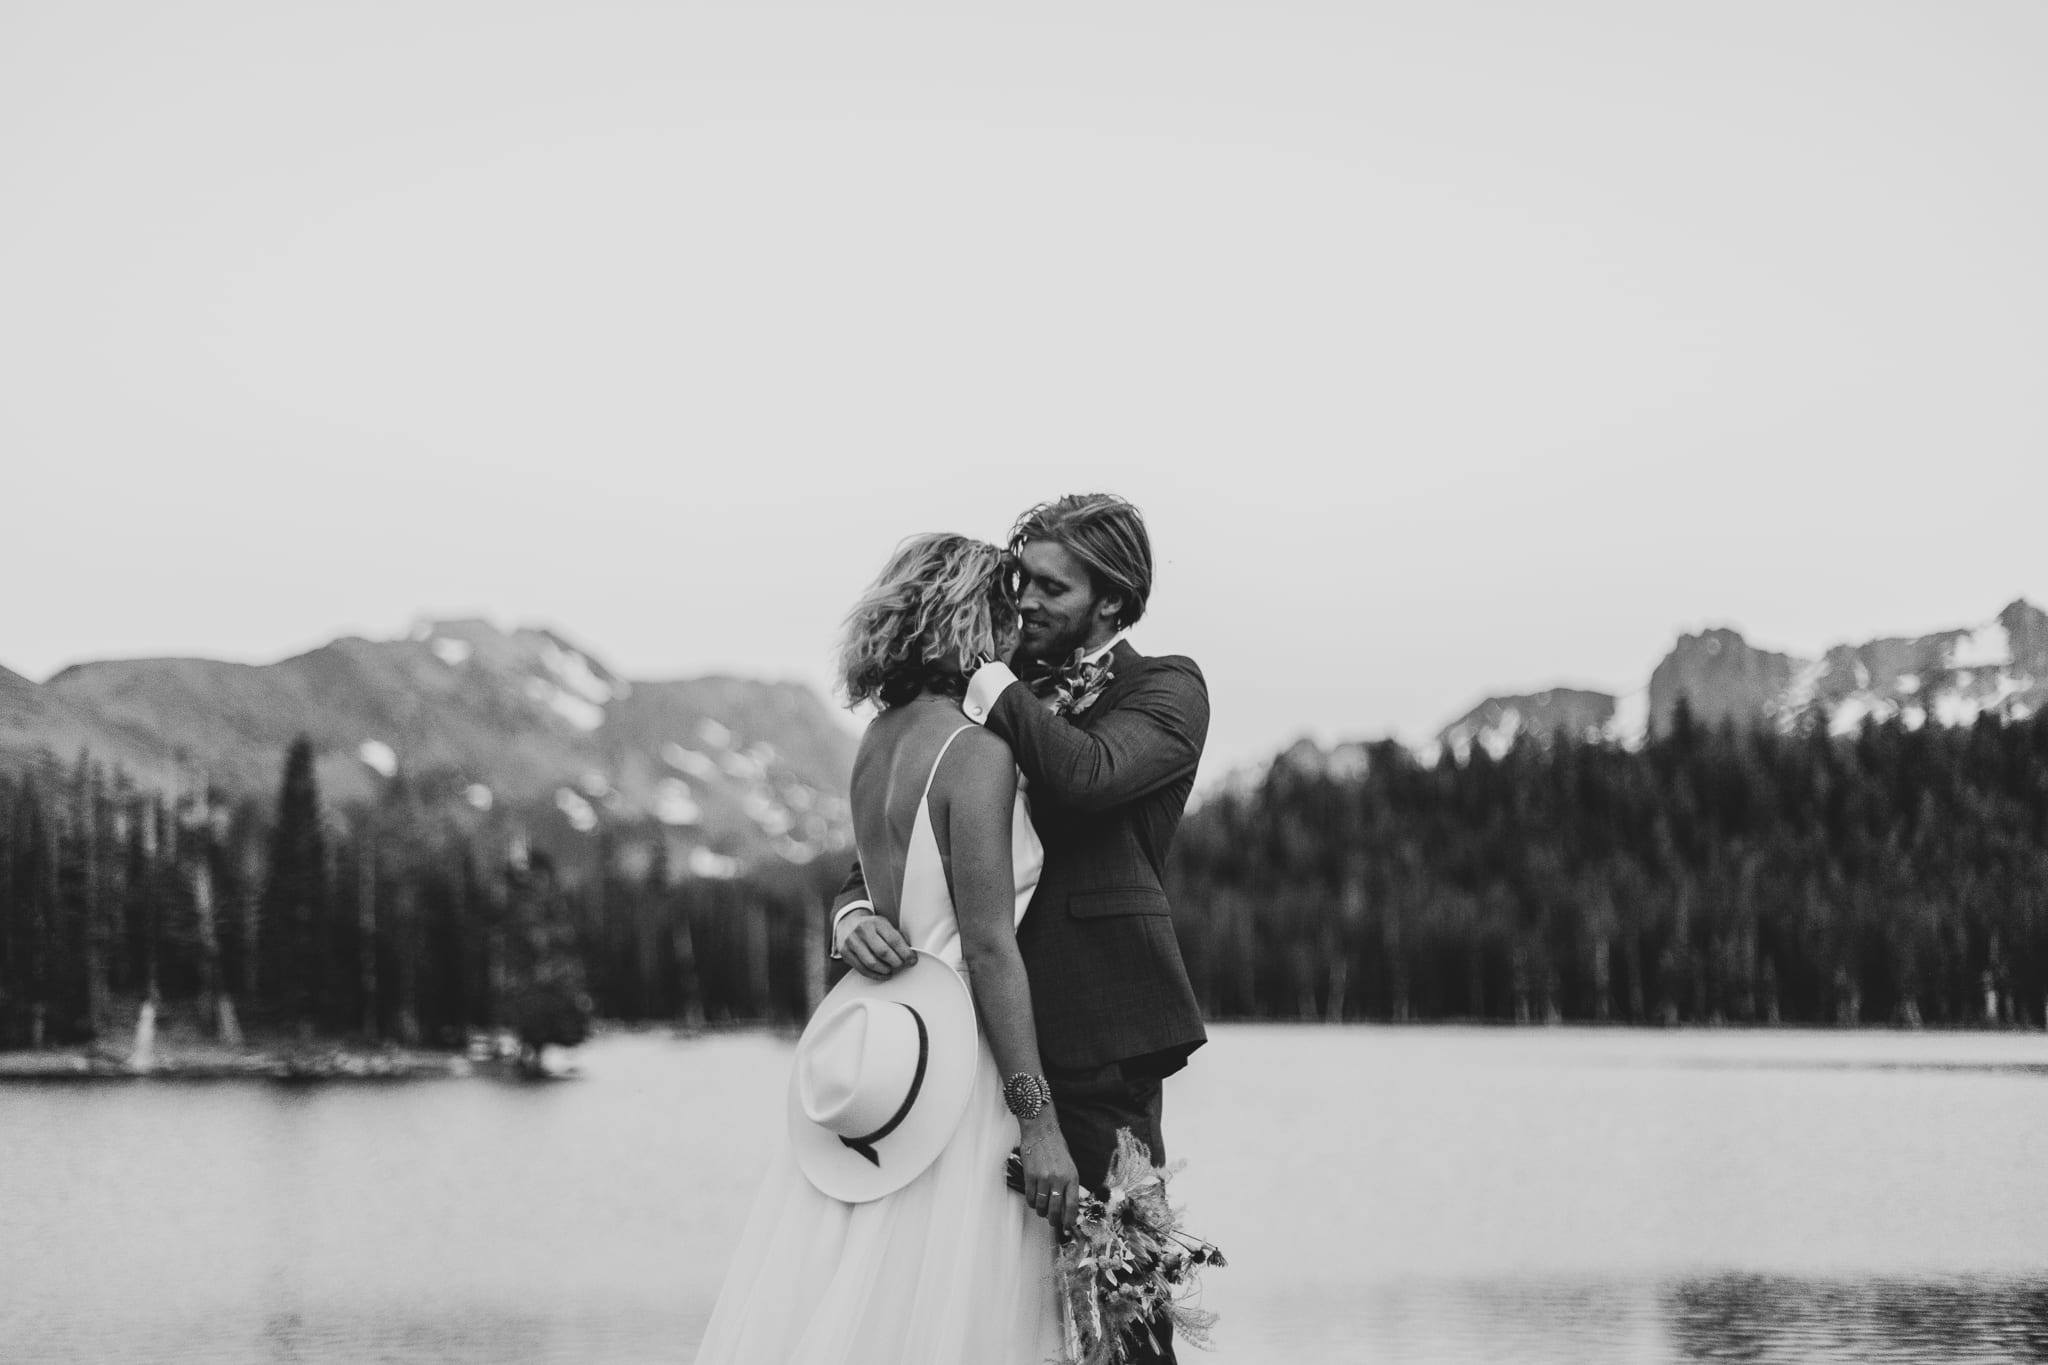 Tyler pulls Haylee close to kiss her on the side of her head on their adventurous elopement day at Mammoth Lakes.